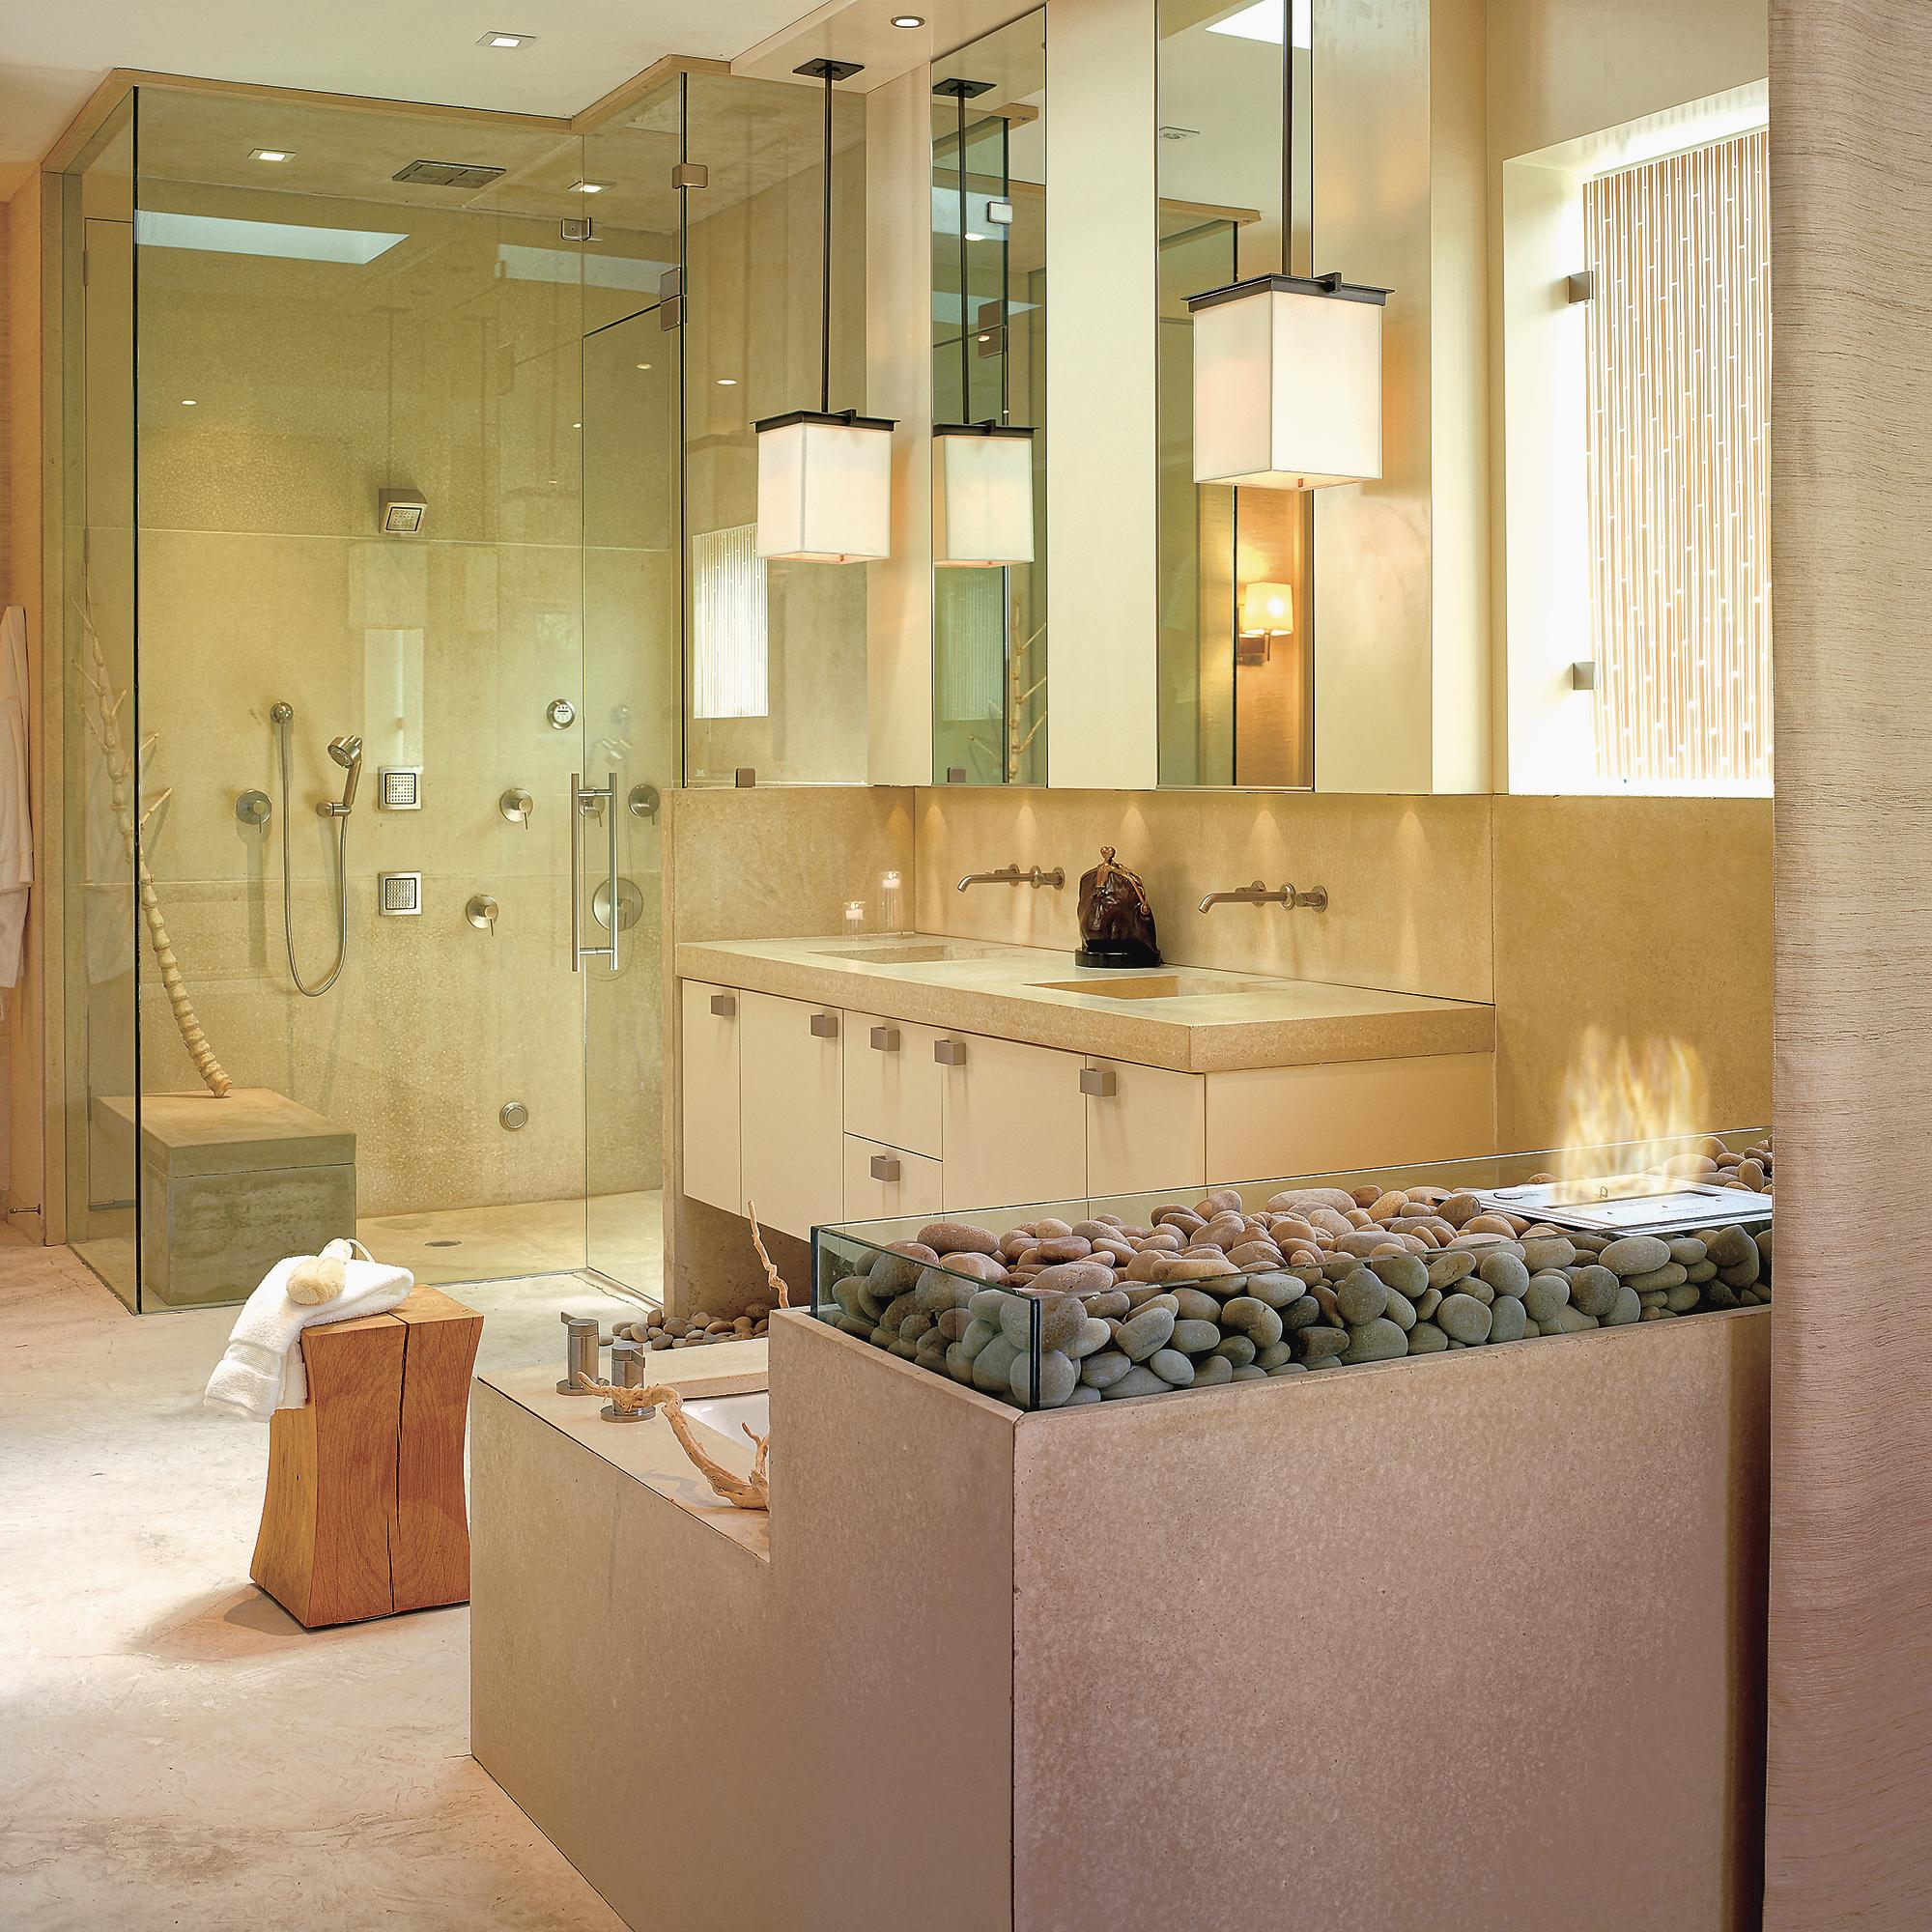 Pendant Drop Tips For Incorporating Pendant Lights Into A Bathroom Design Remodeling Bath